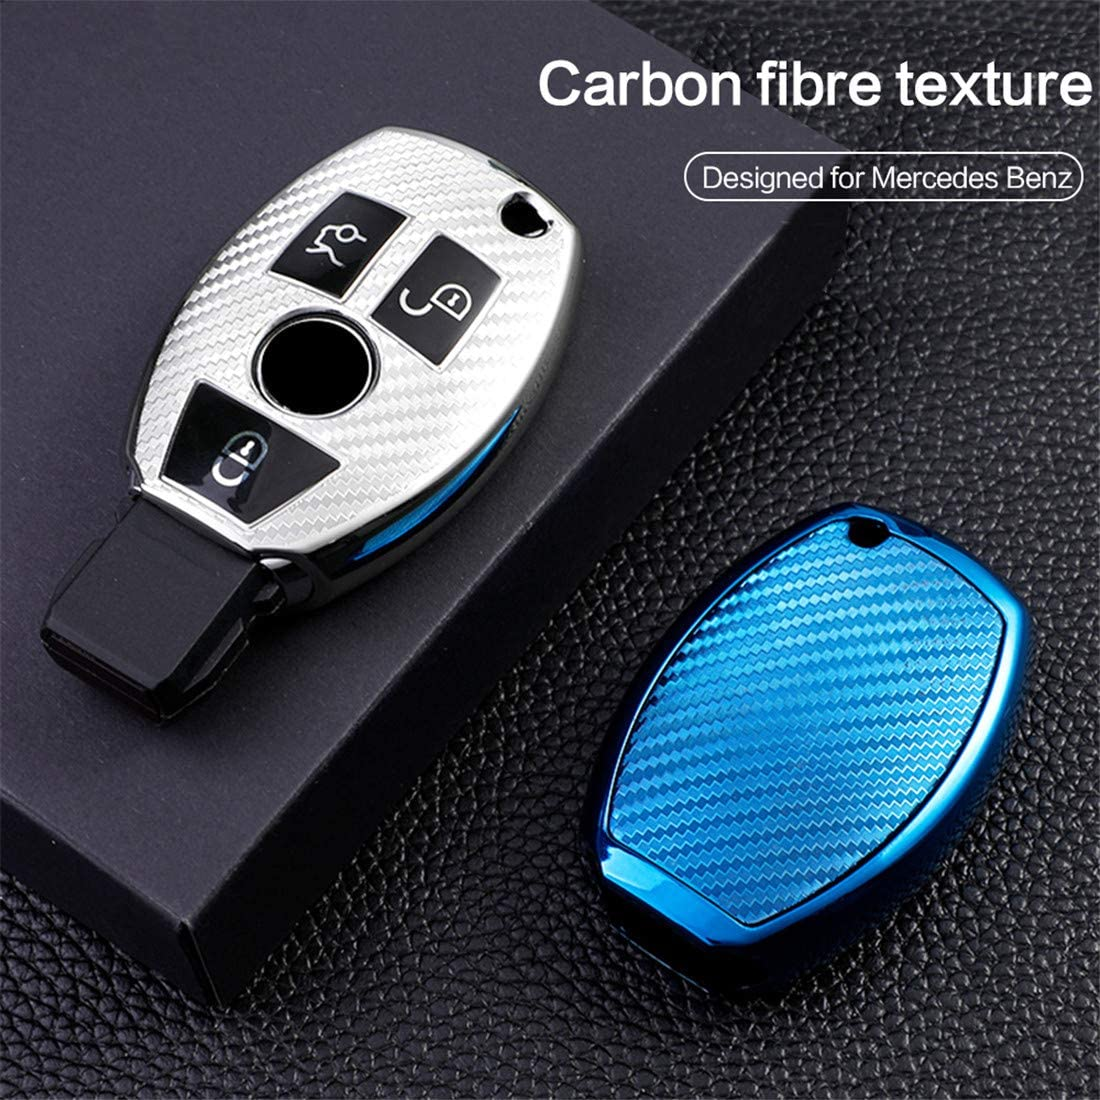 Premium Soft TPU Carbon fiber Key Case Cover Compatible with Mercedes Benz C E S M CLS CLK G Class Keyless Smart Key Fob+1pac keychain Silver for Mercedes Benz Key Fob Cover